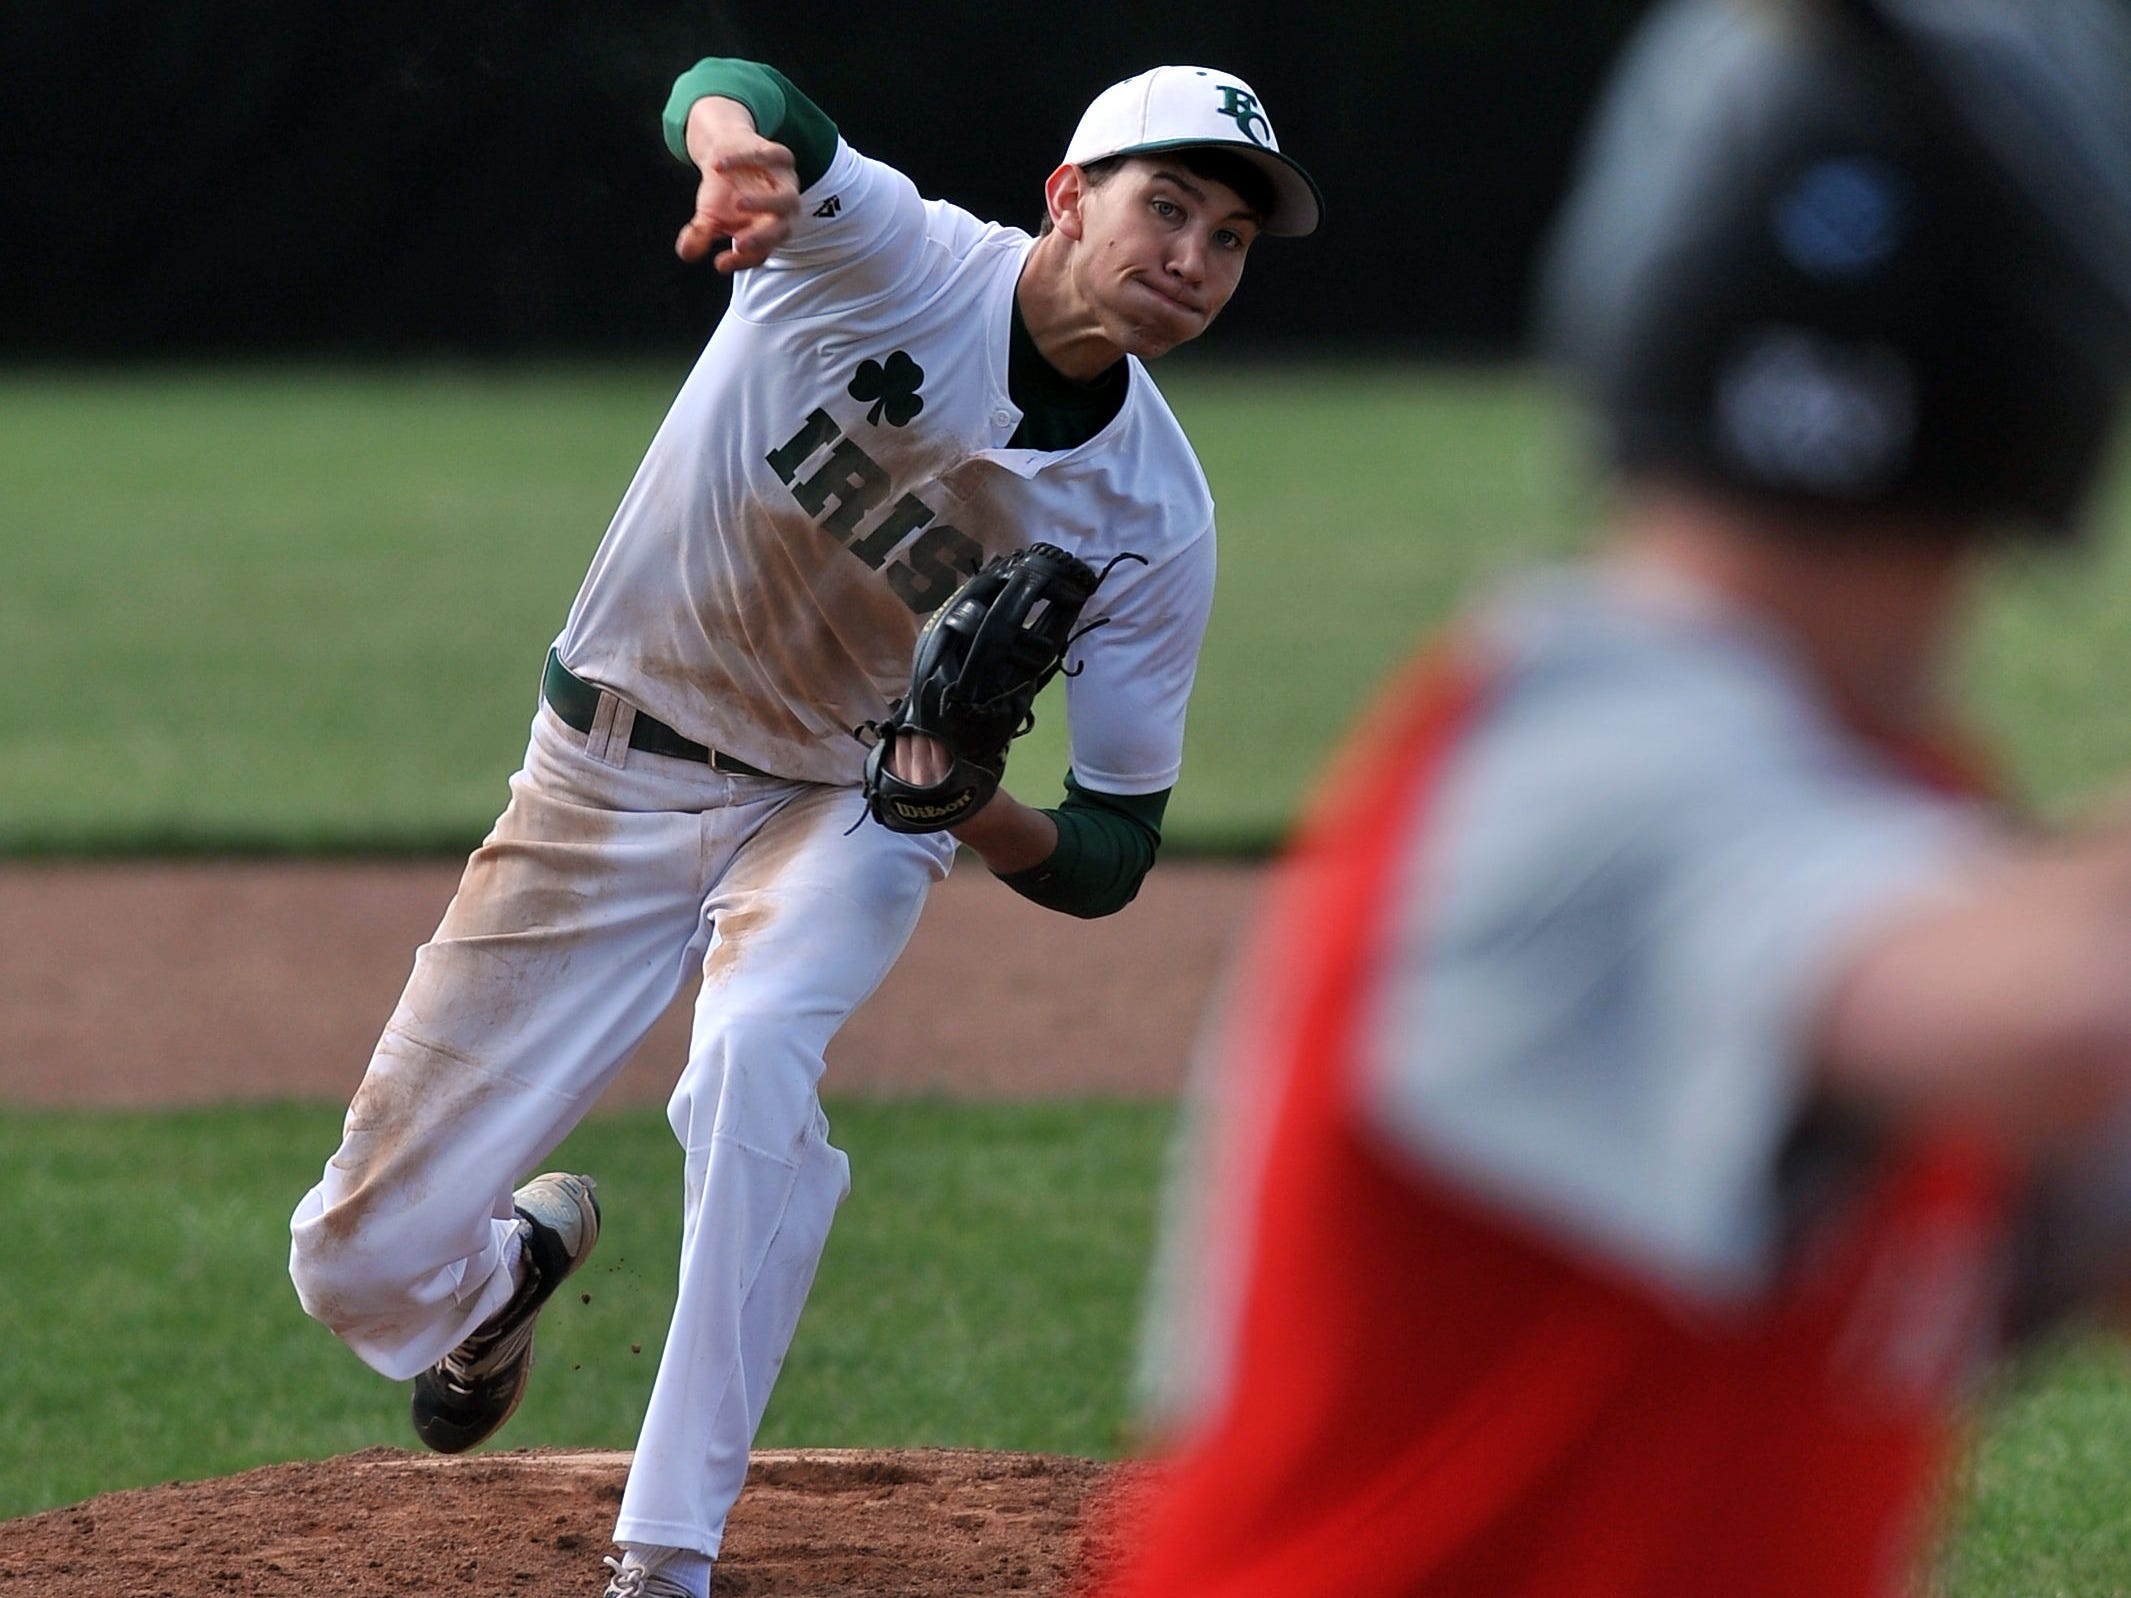 Fisher Catholic's Jared Faulkner pitches during Wednesday's game in Lancaster. The Irish won the game over Fairbanks 3-2.